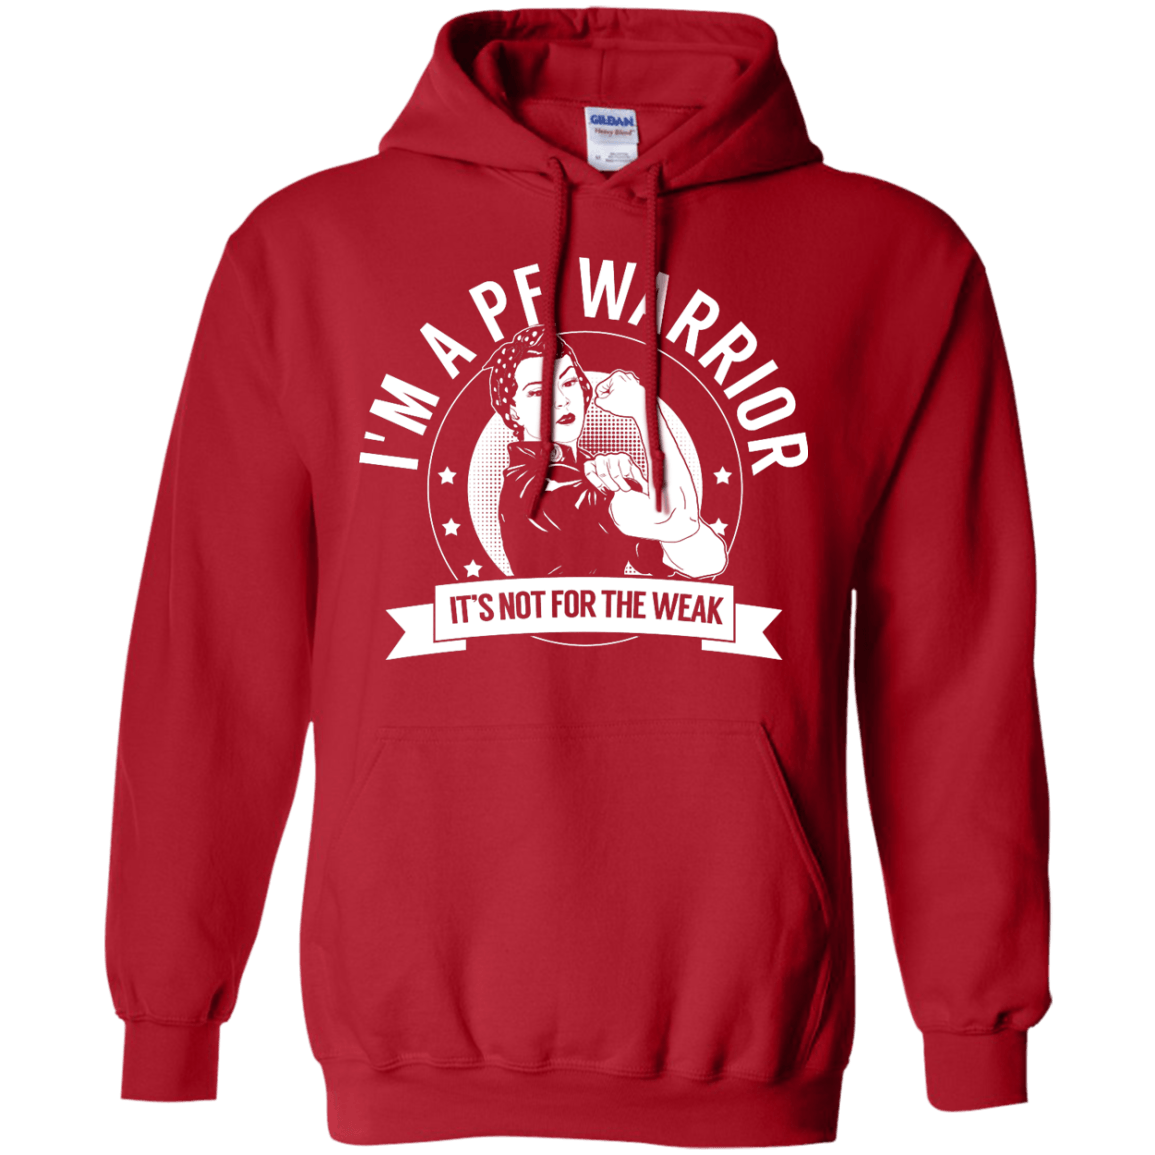 Sweatshirts - Pulmonary Fibrosis - PF Warrior Not For The Weak Pullover Hoodie 8 Oz